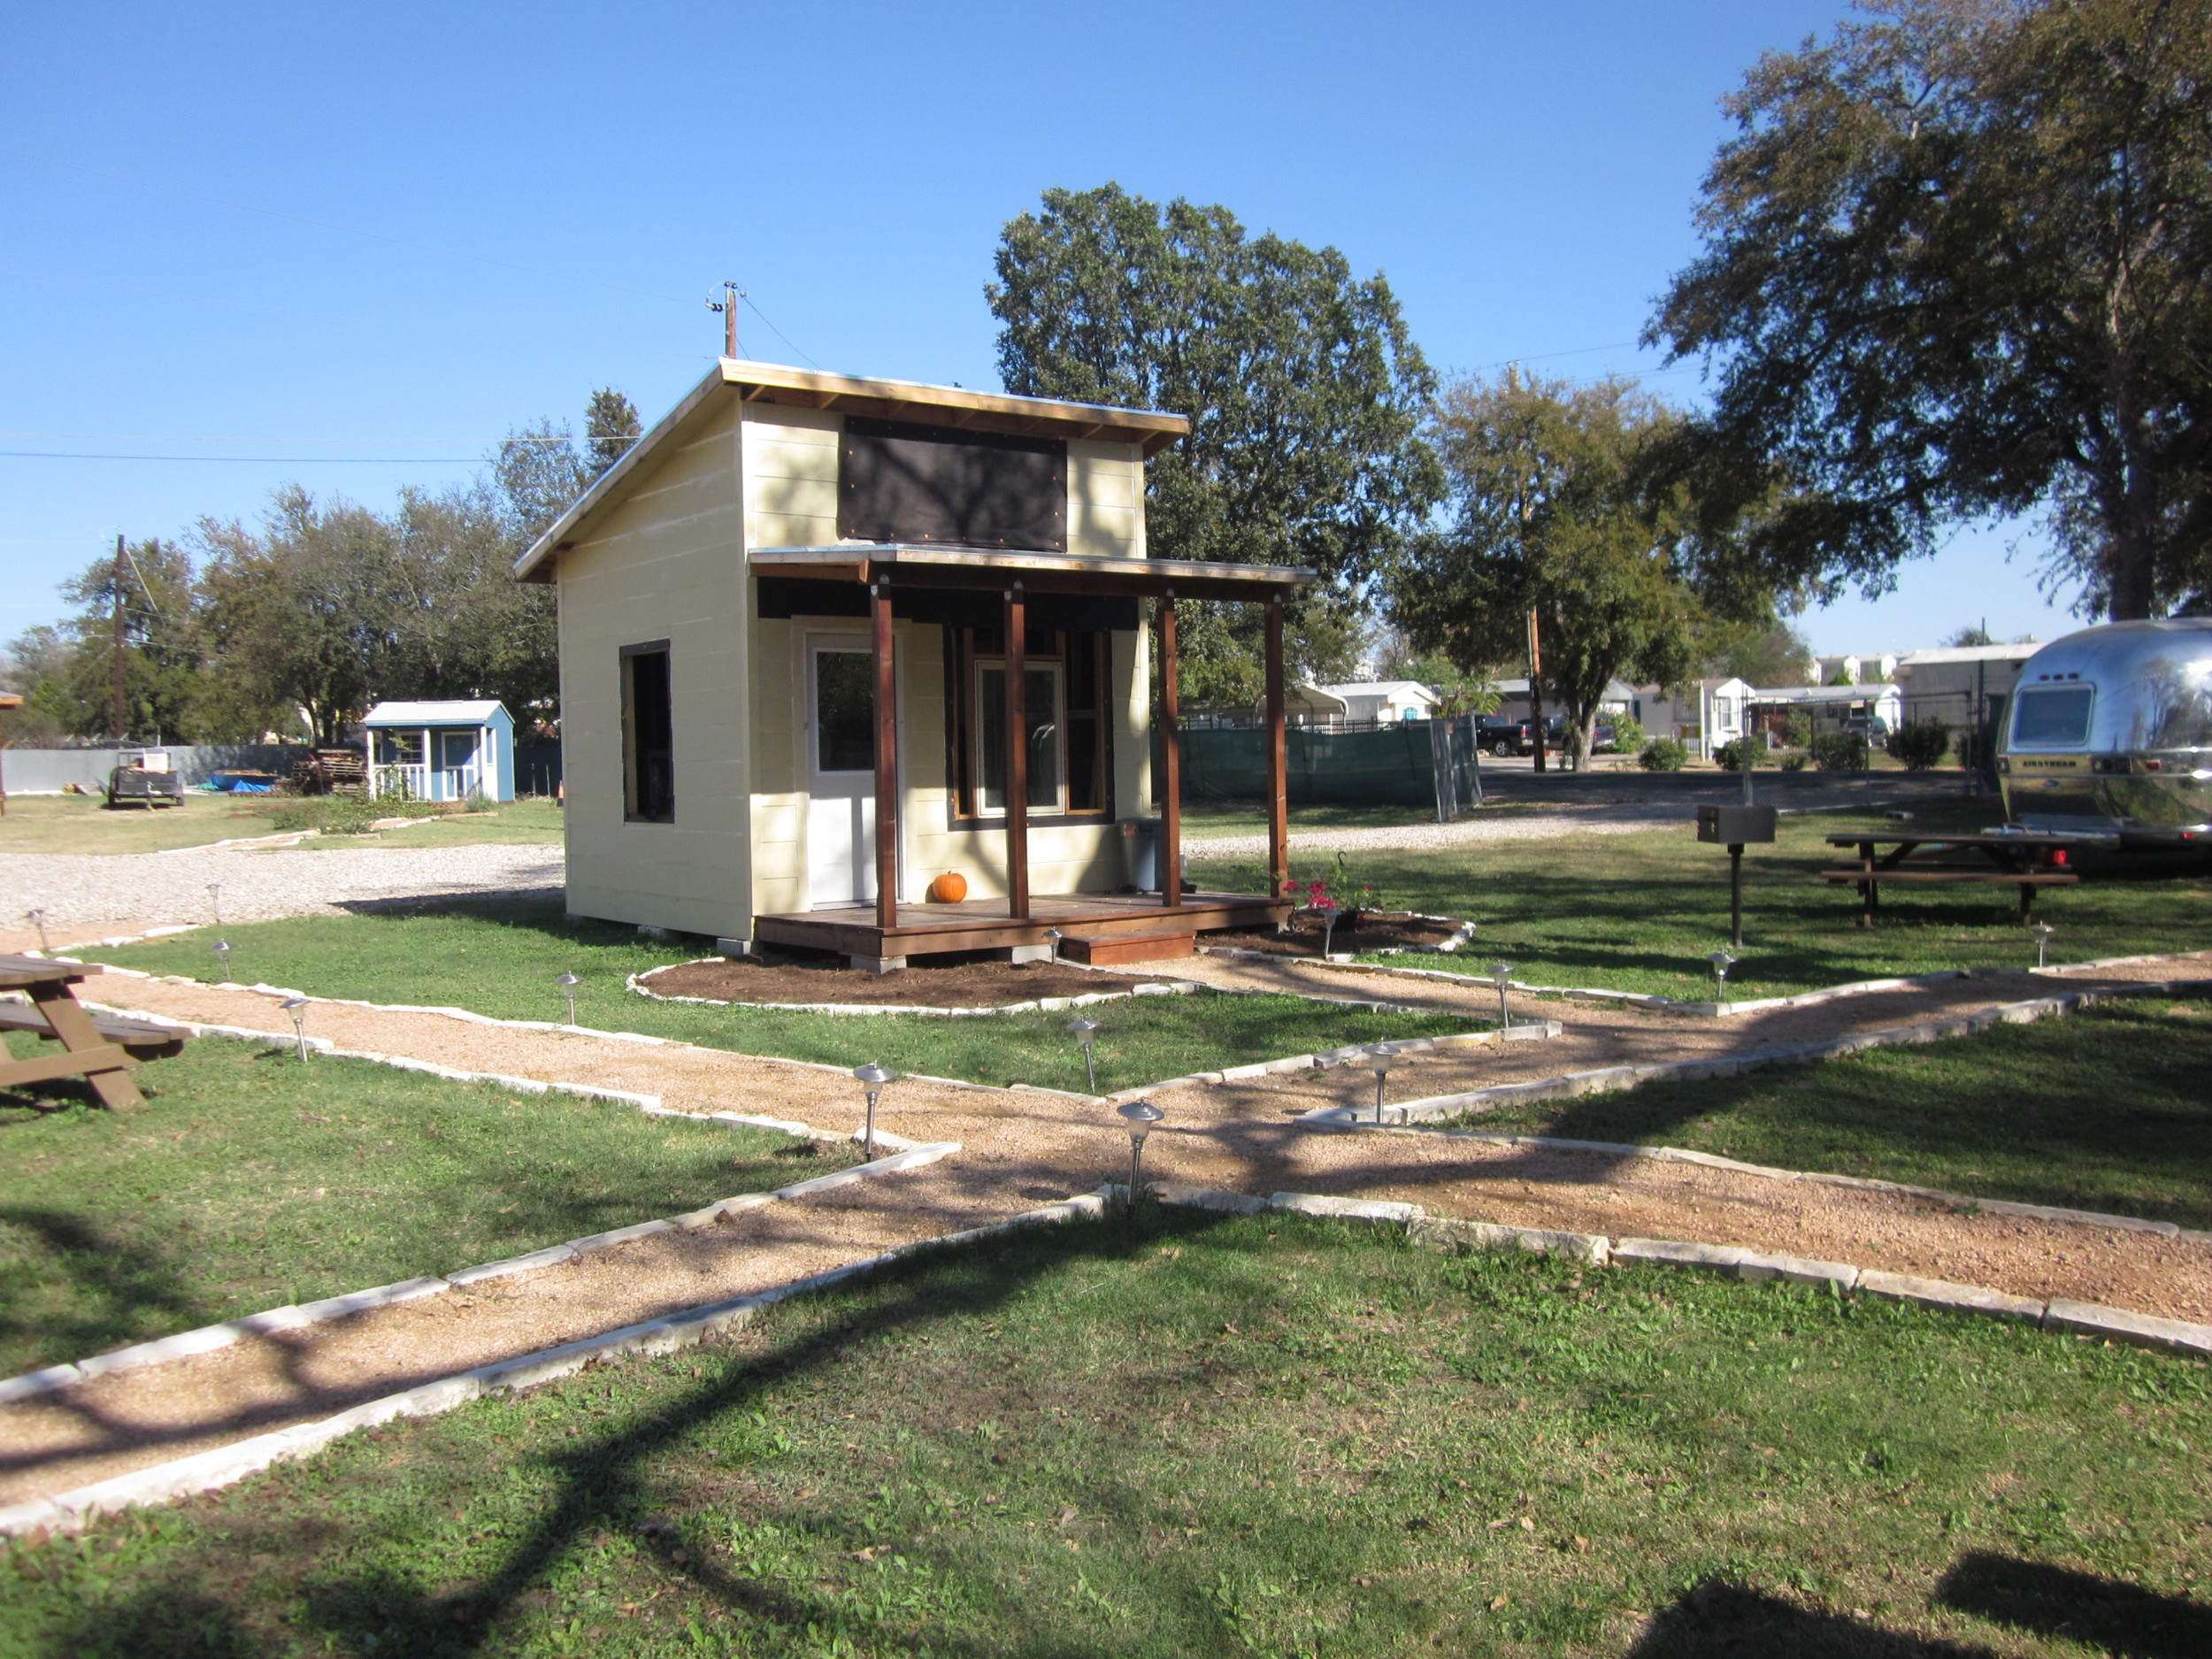 Micro Home - $7,500 to house a person